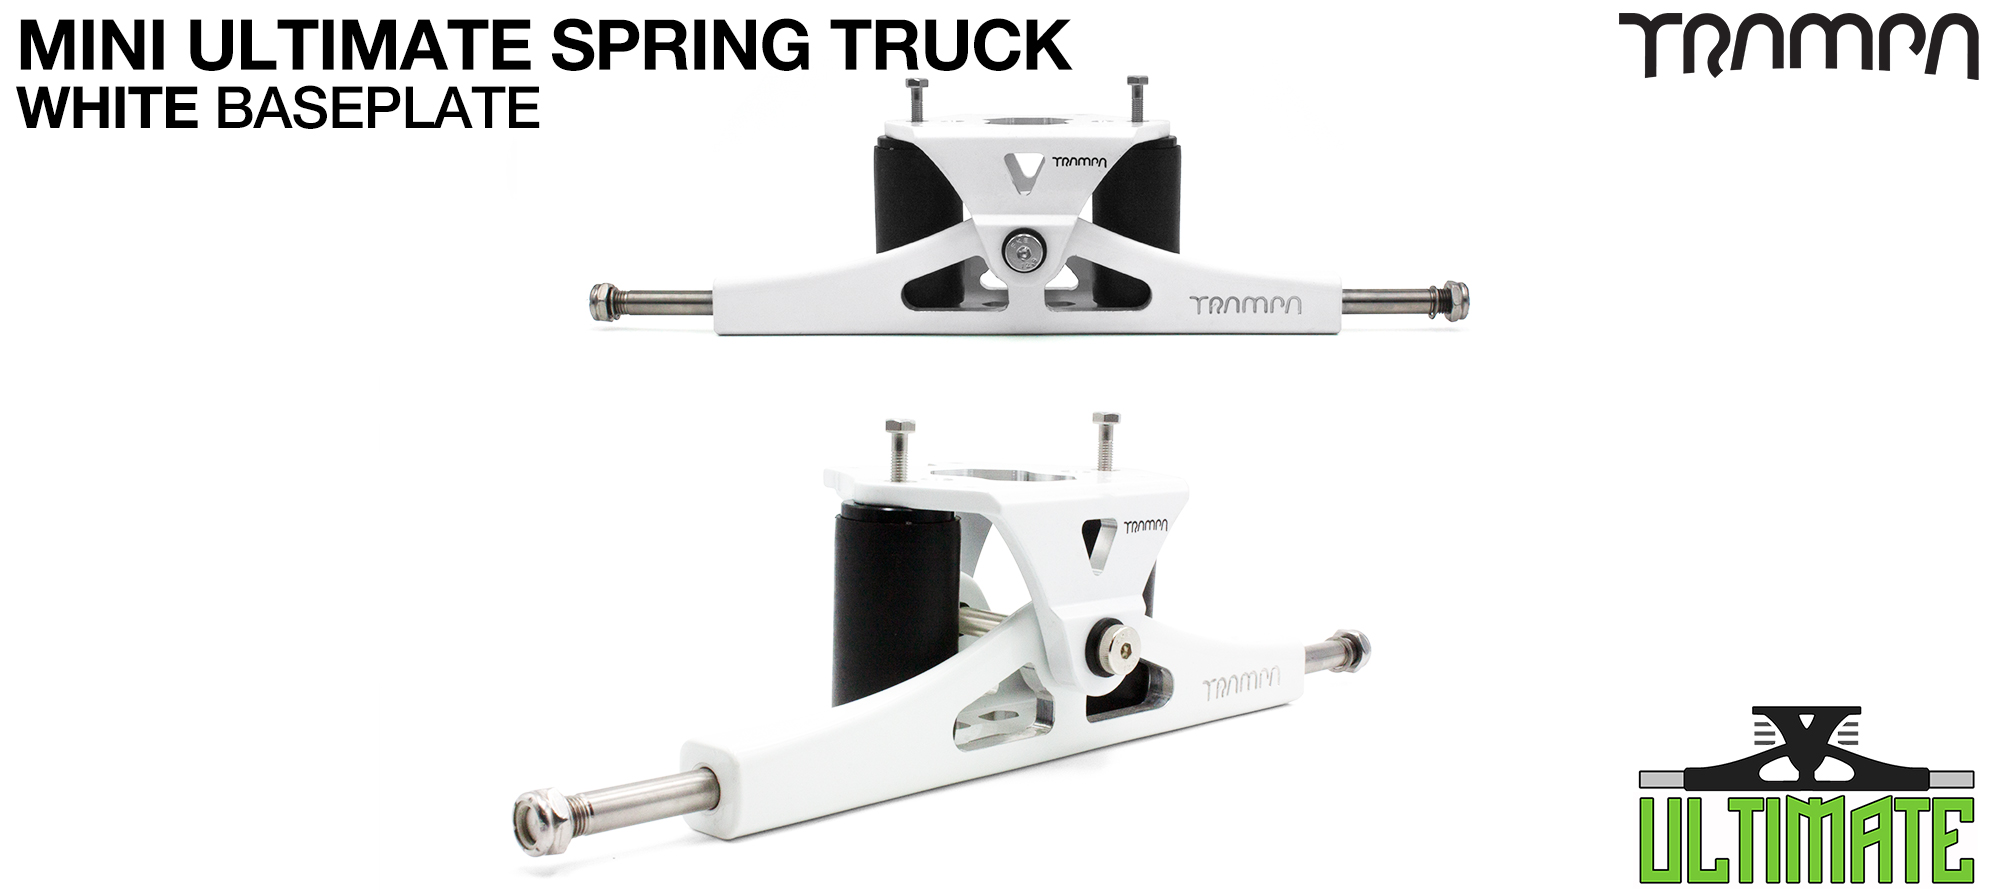 Mini ULTIMATE TRAMPA TRUCKS - CNC FORGED Channel Hanger with 9.525mm TITANIUM Axle CNC Baseplate TITANIUM Kingpin - WHITE